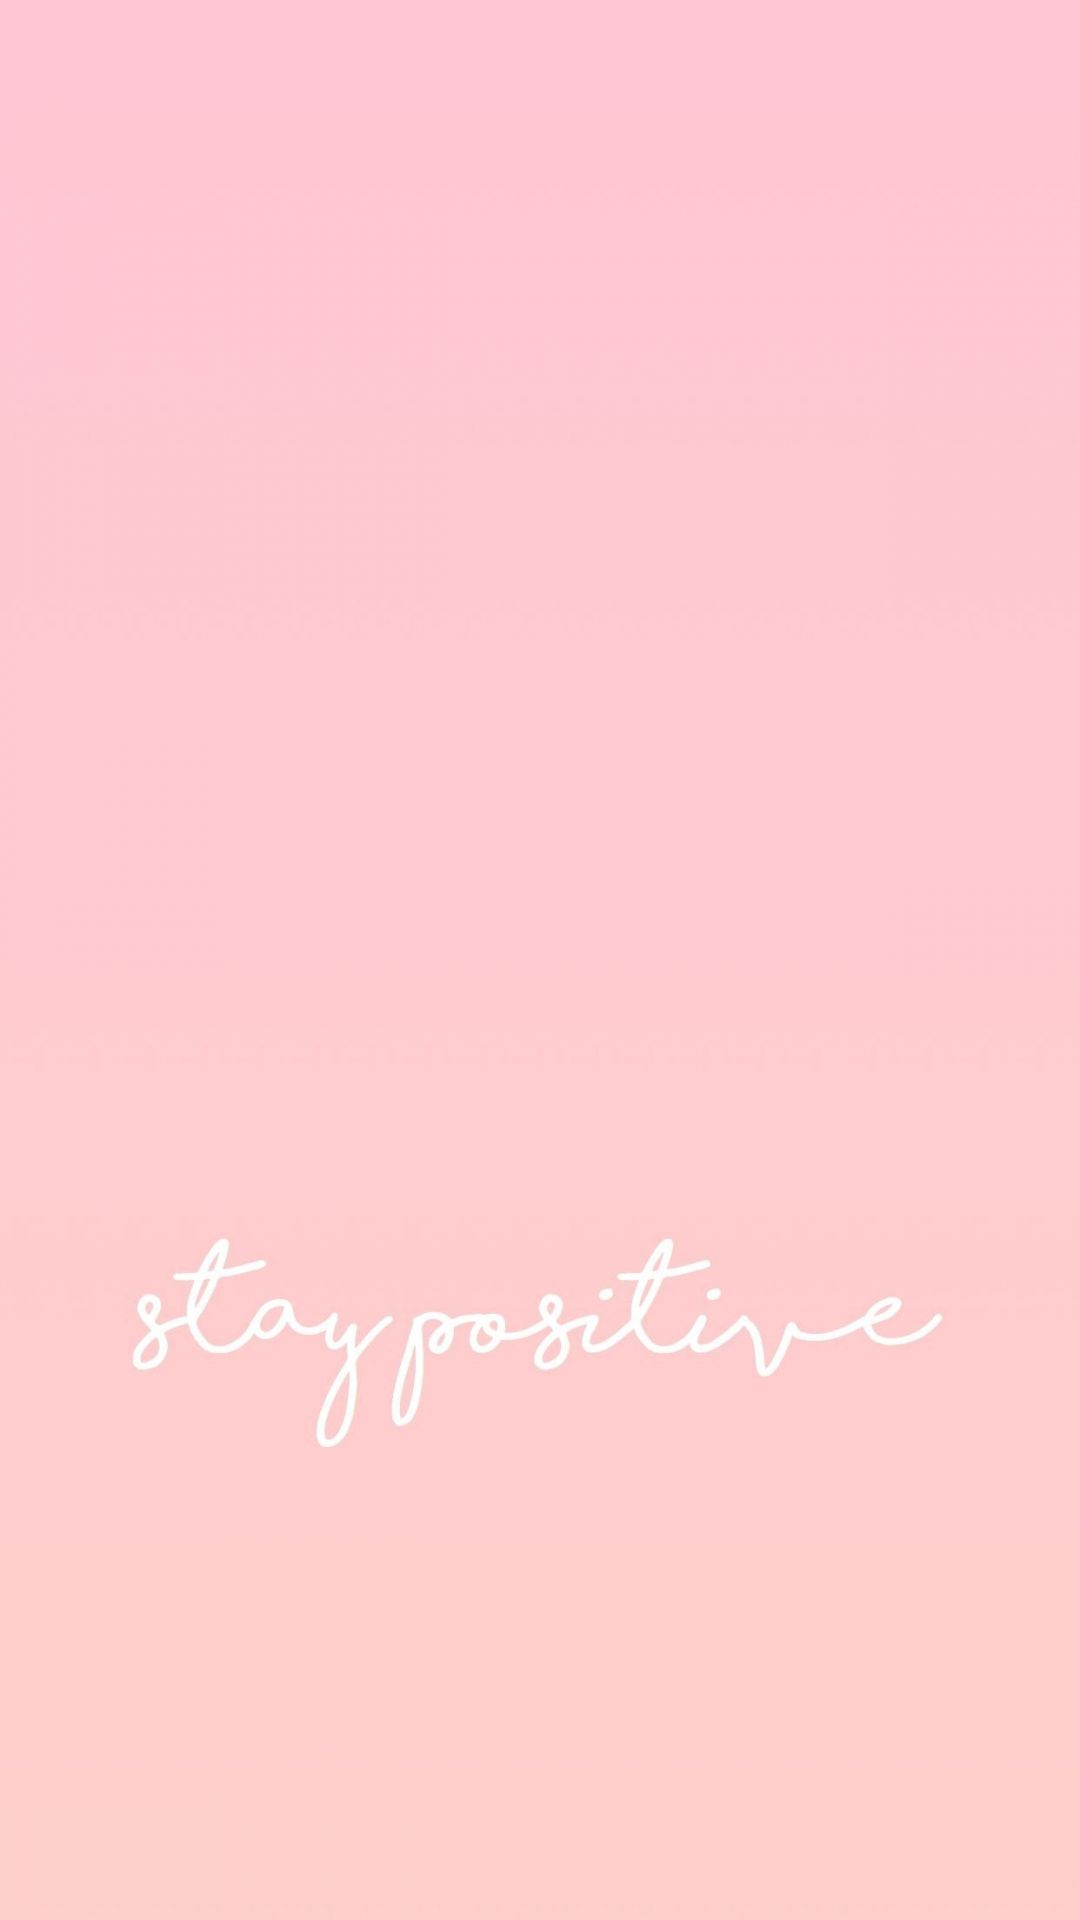 55 Positive Aesthetic Laptop Hd Wallpapers Desktop Background Android Iphone 1080p 4k 1242x2208 2020